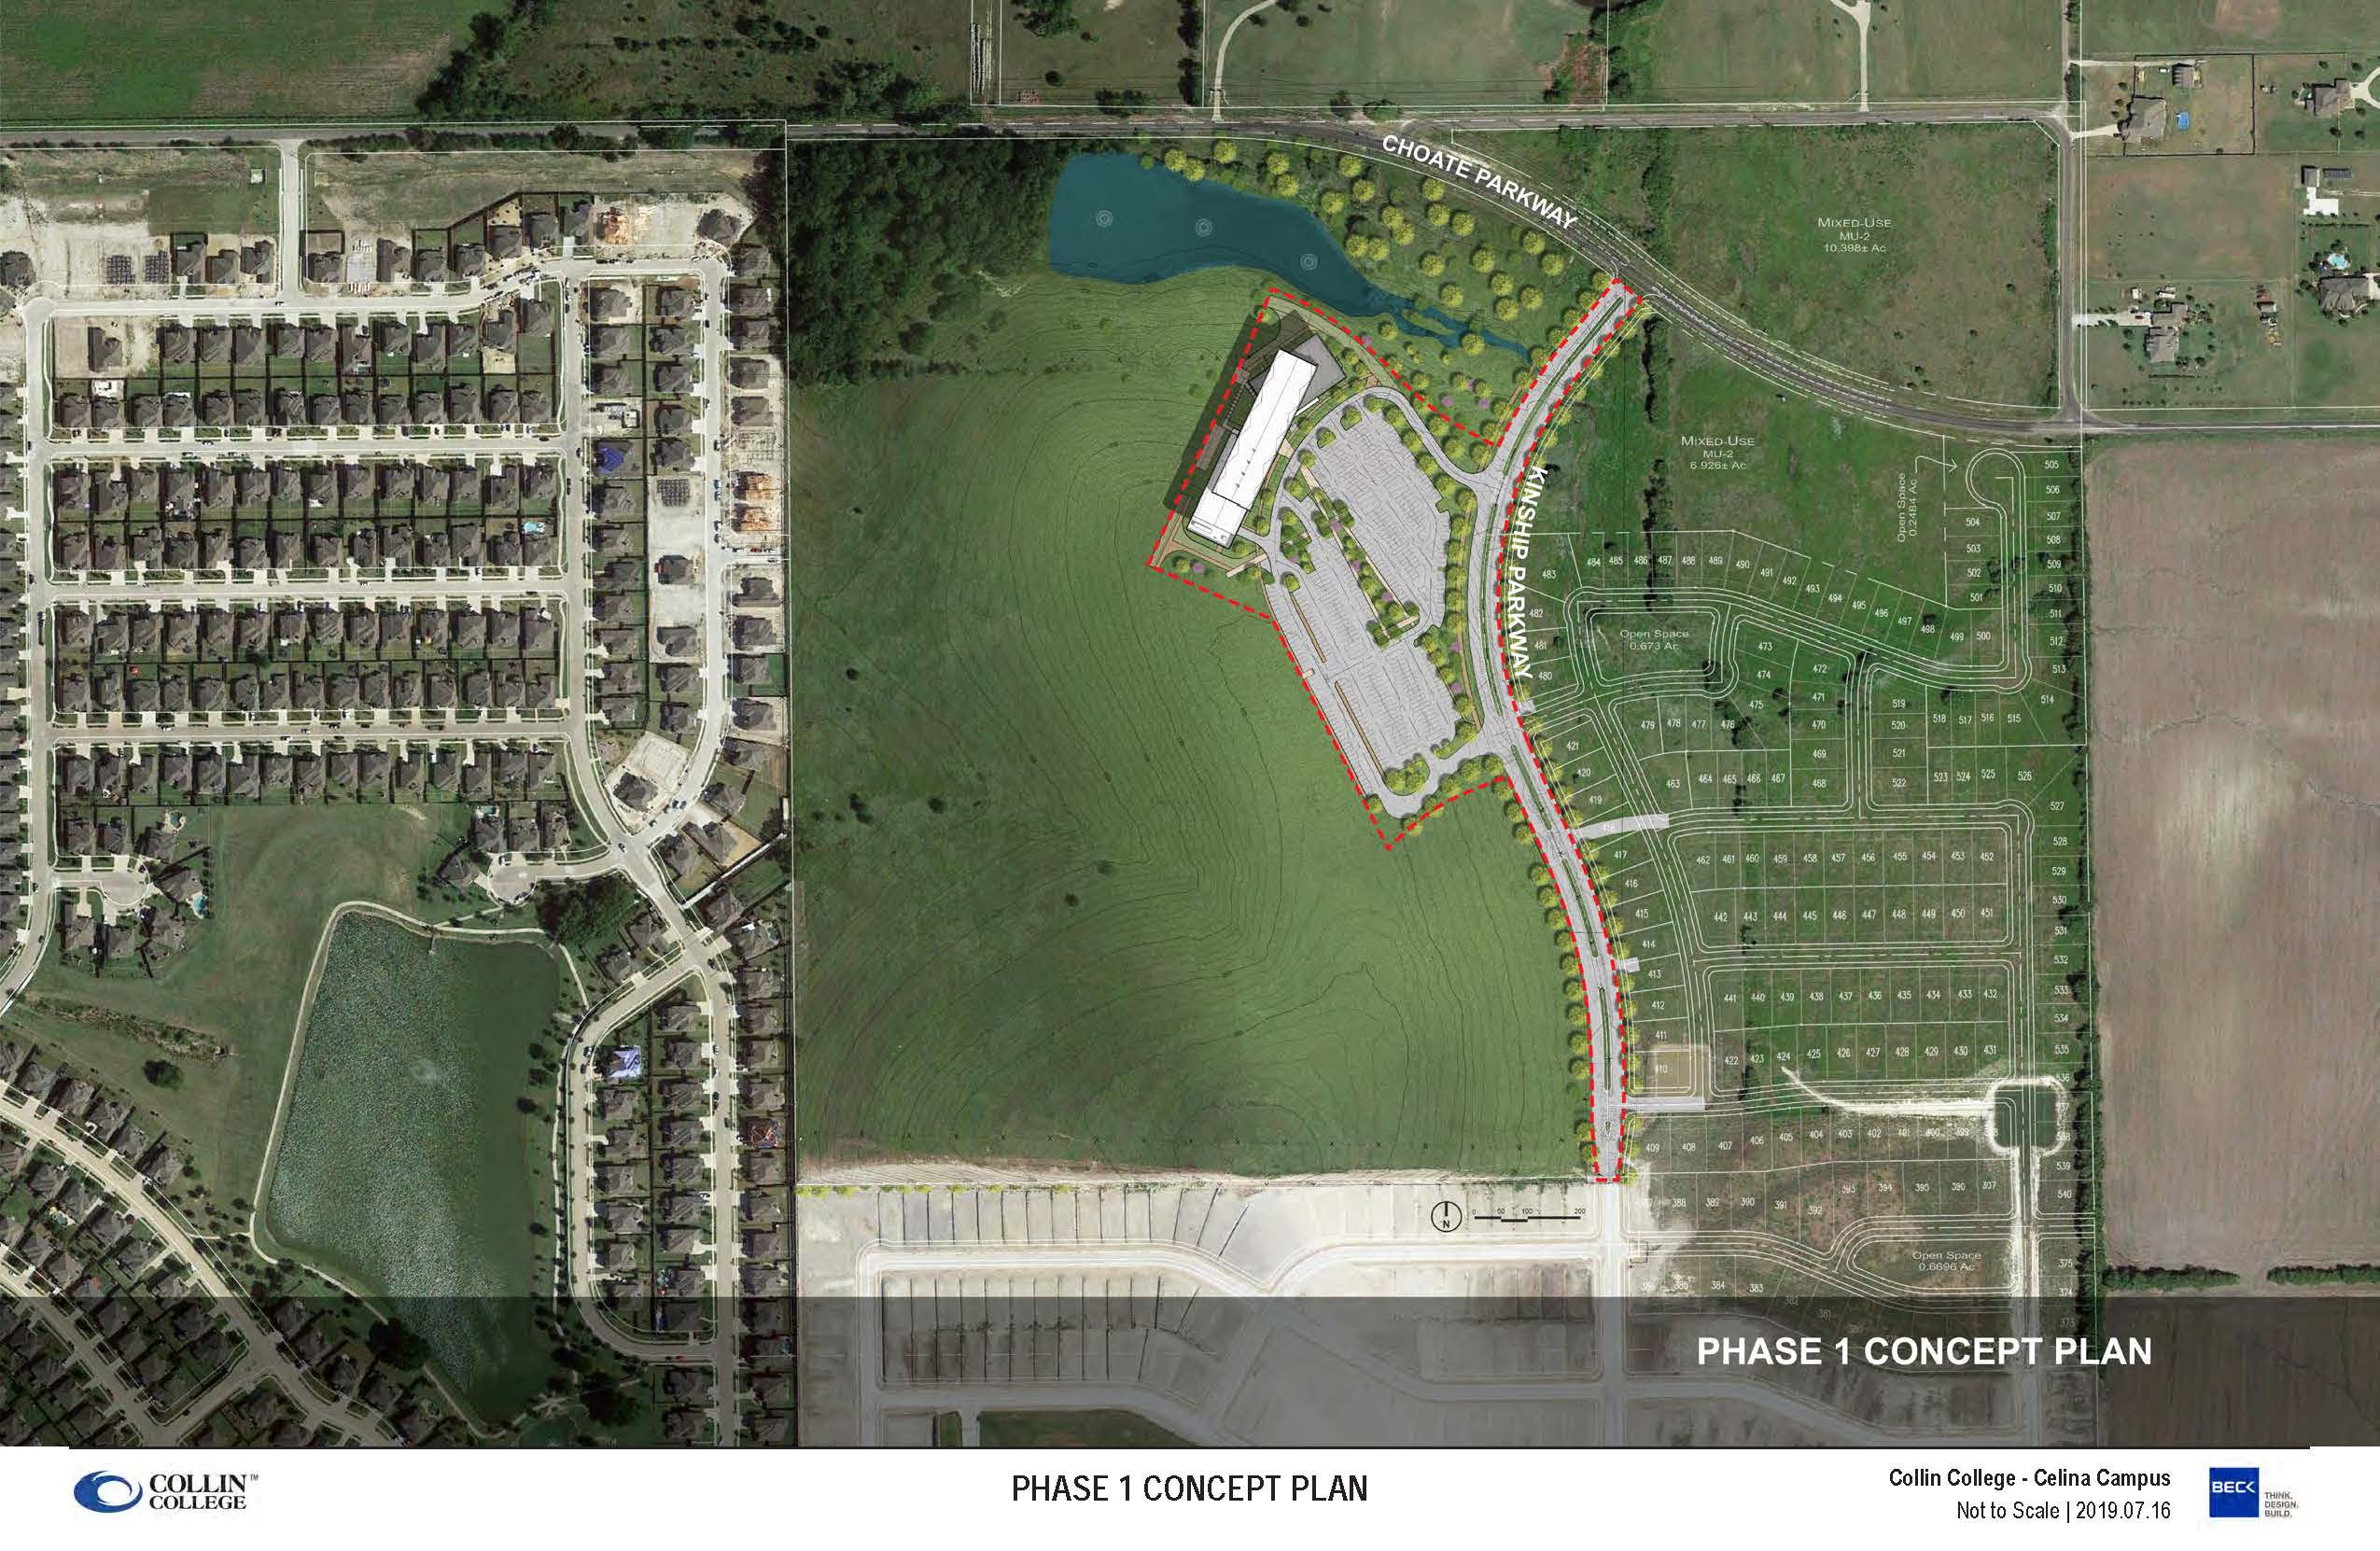 Collin College - Phase 1 Site Plan